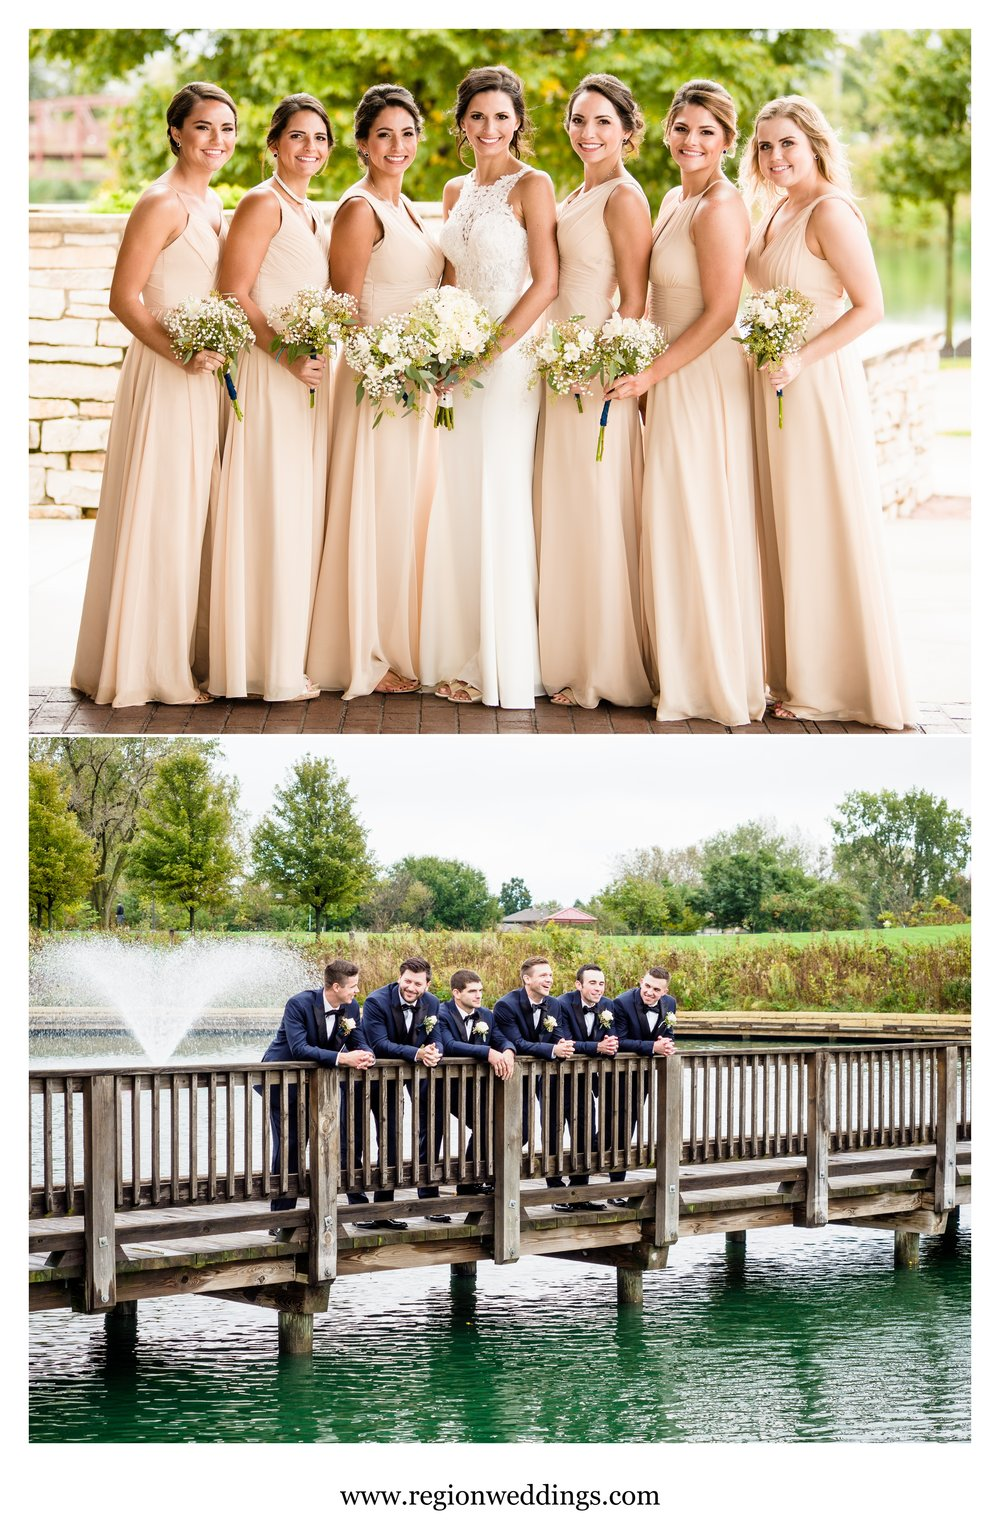 Bridesmaids and groomsmen at Centennial Park in Munster, Indiana.